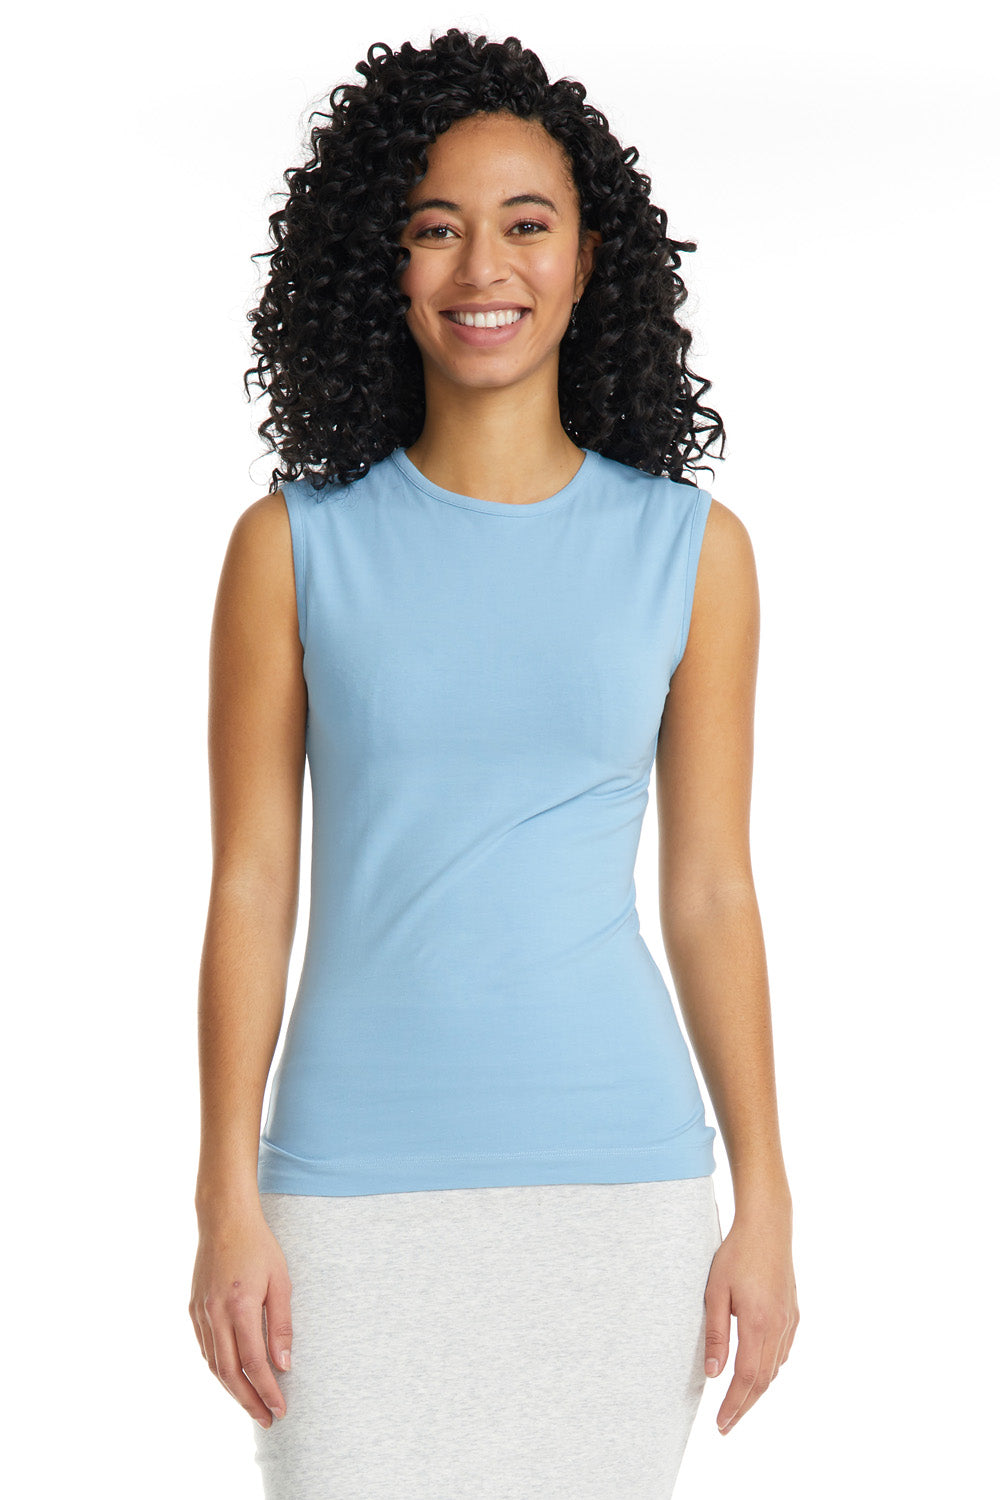 Esteez Sleeveless Cotton Spandex Fitted Layering Shell for WOMEN - BABY BLUE